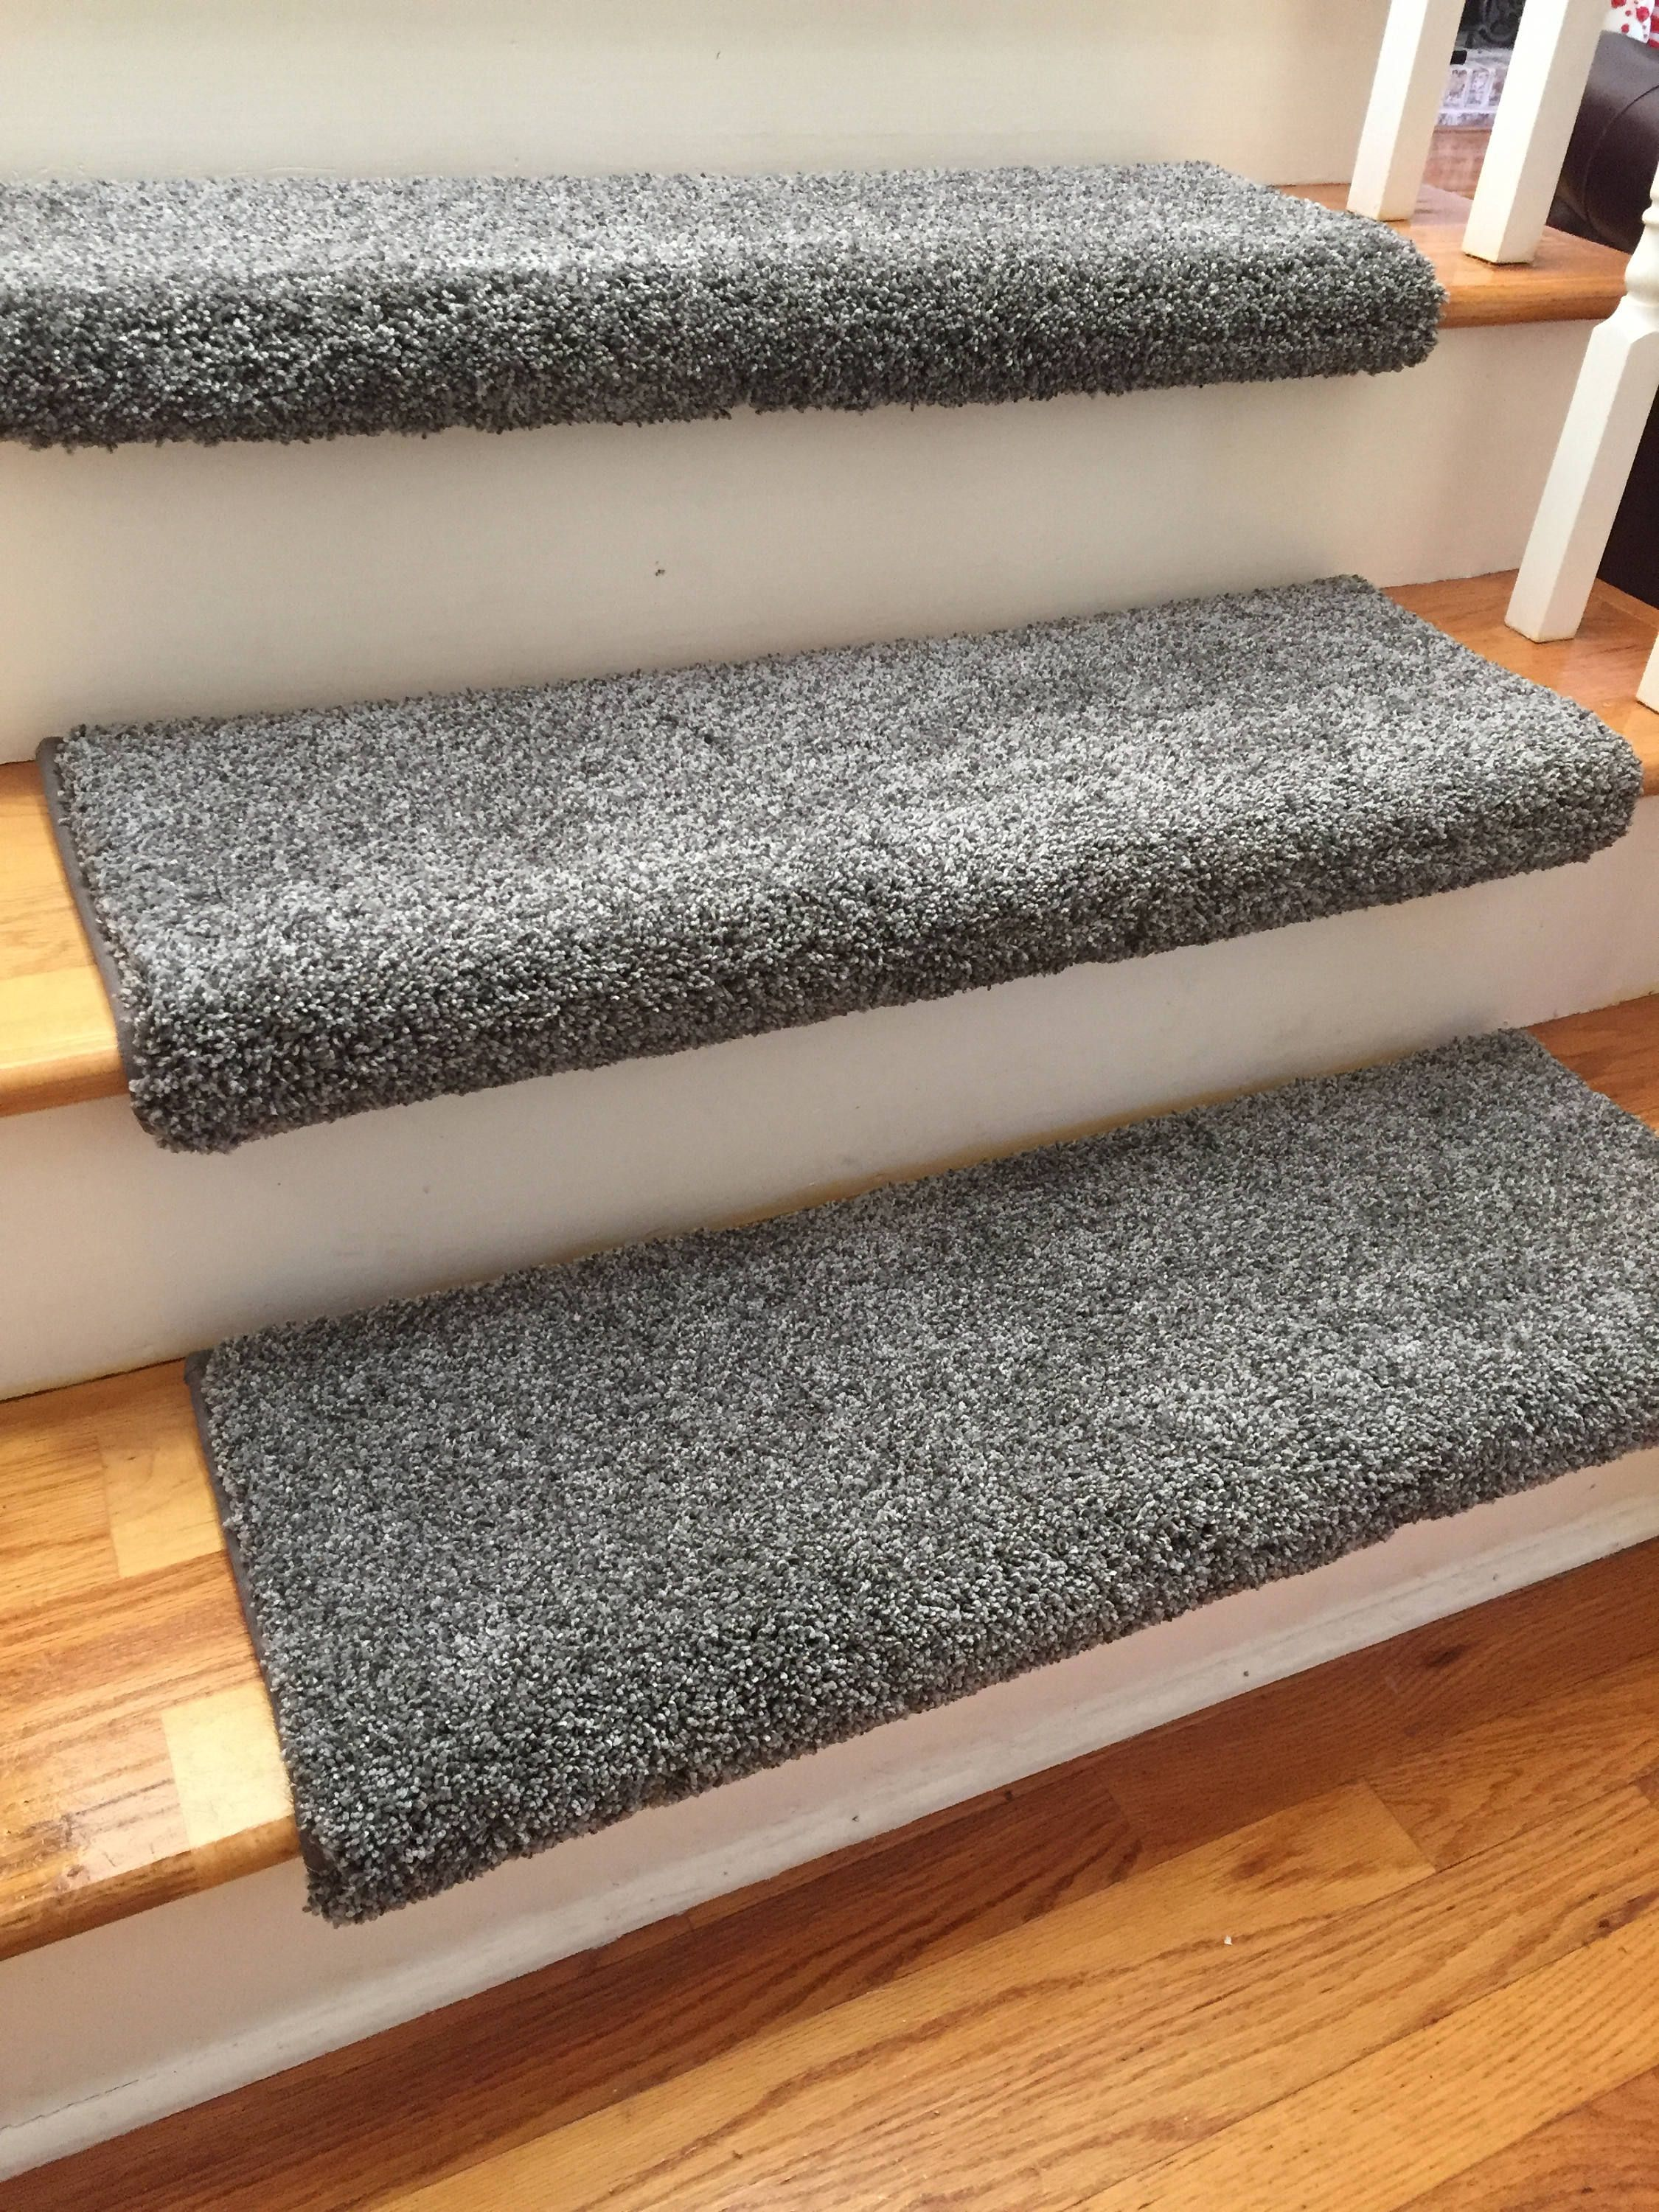 Dazzling Magma Grey Gray Plush Shag True Bullnose Padded Carpet Stair Tread For Safety Comfort Dog Cat Pet Sold Each Carpet Stair Treads Buying Carpet Grey Carpet